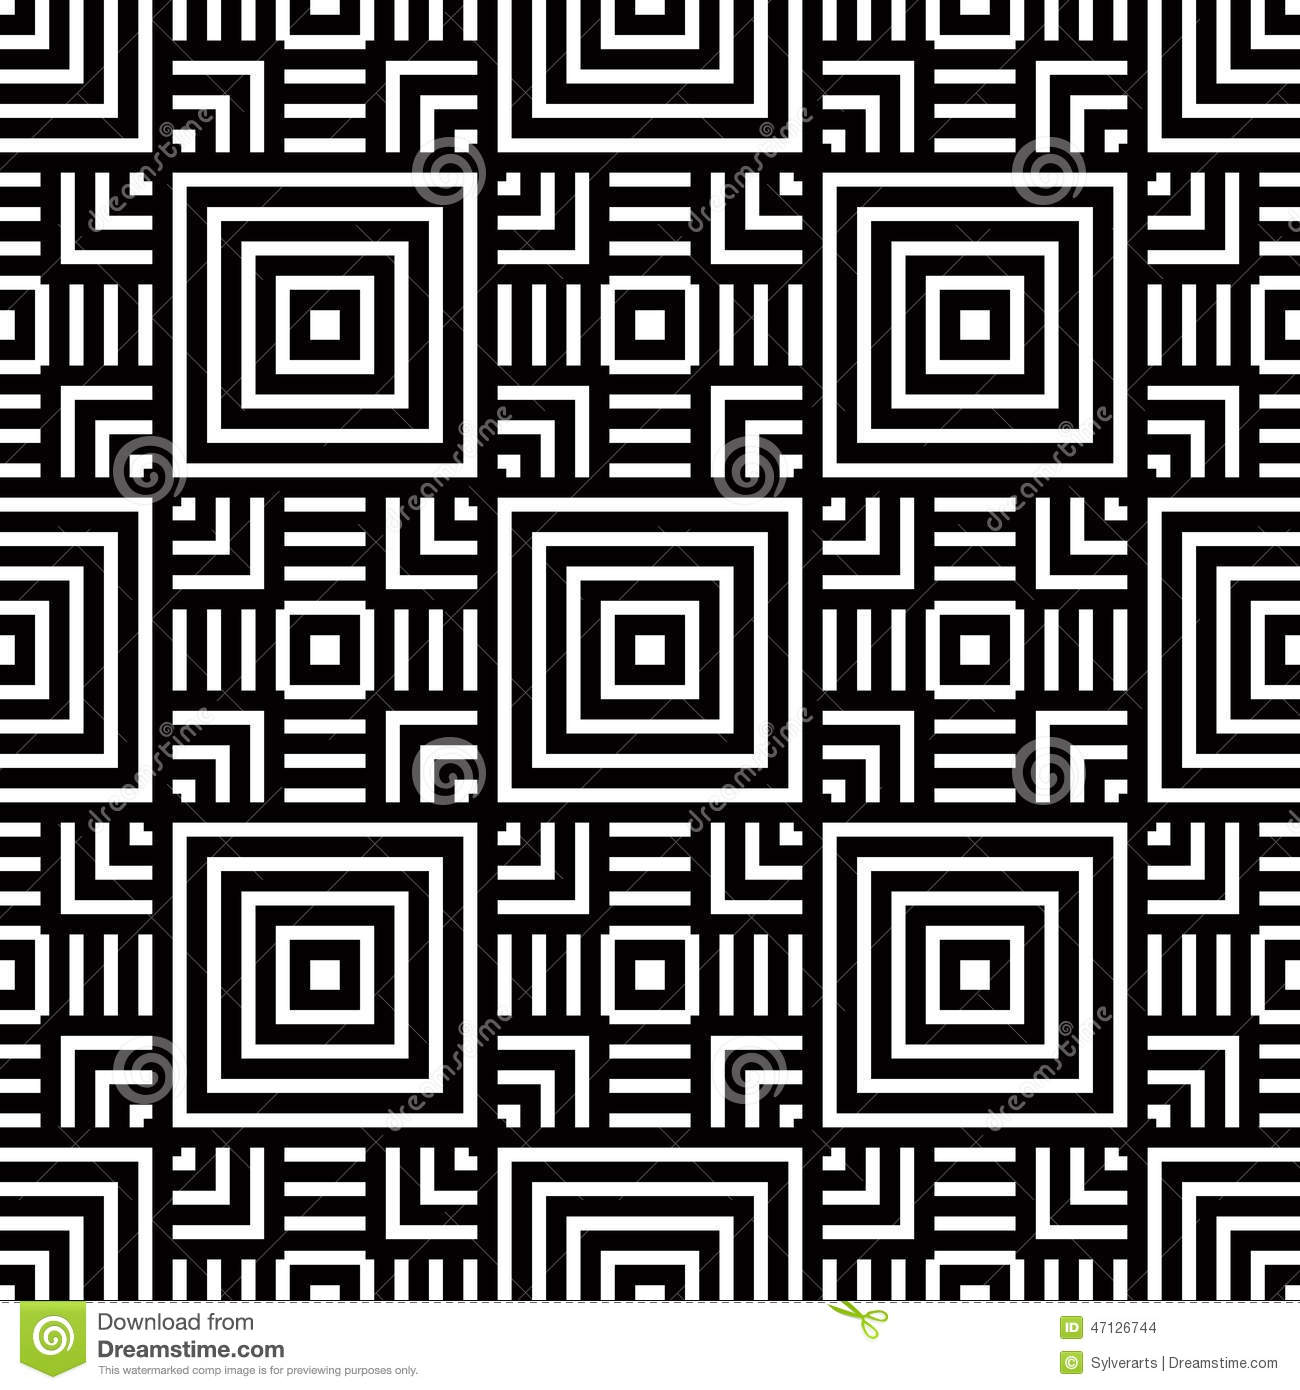 Seamless Geometric Pattern Black And White Simple Vector Background Accurate Editable And Useful Background For Design Or Wall Stock Vector Illustration Of Backdrop Design 47126744,Pid Controller Design Tuning Parameters And Simulation For 4th Order Plant